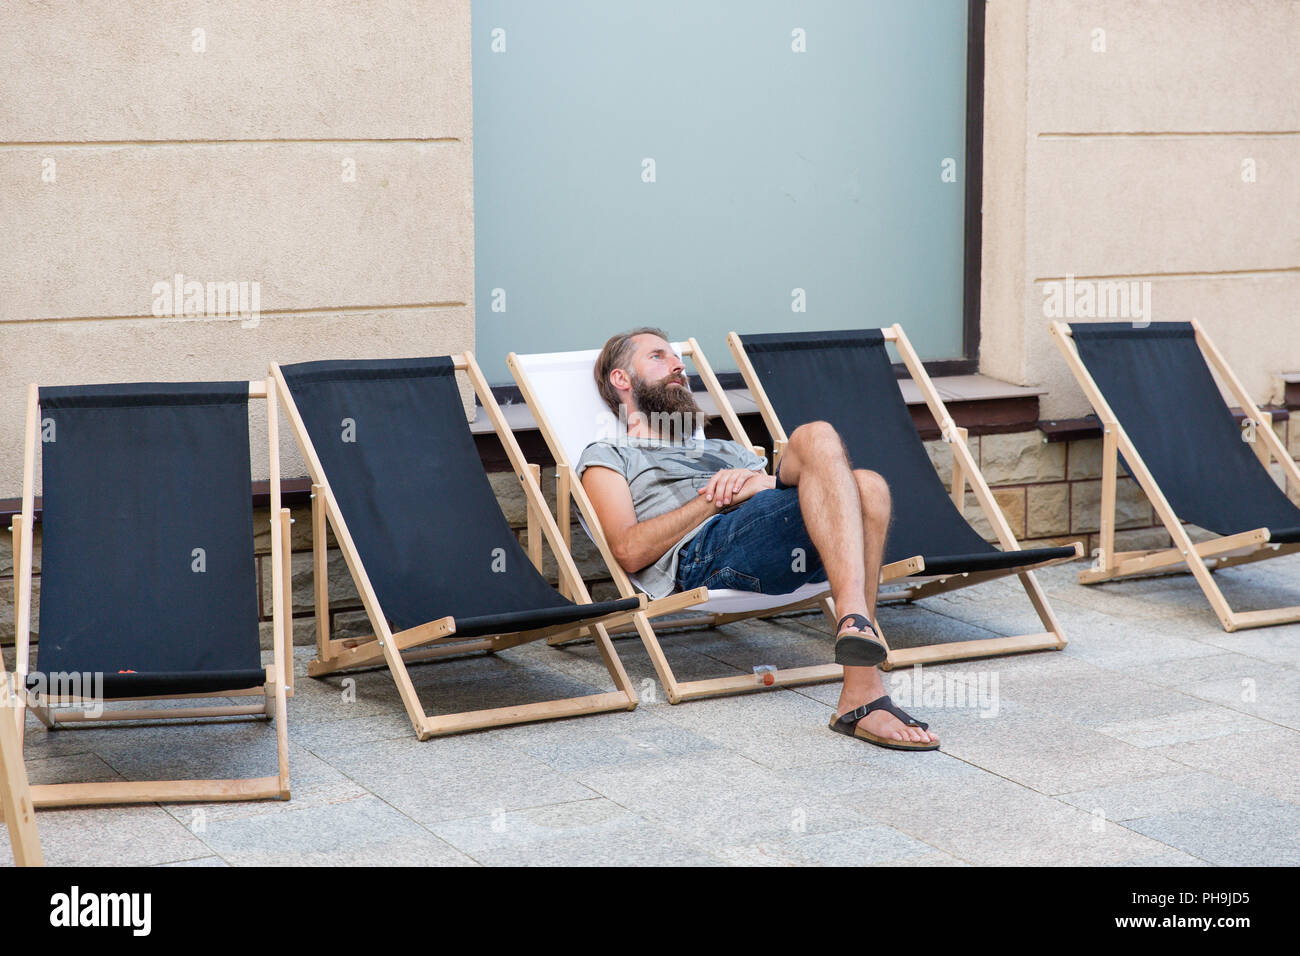 Man with a beard resting and relaxing on a deckchair in Krosno Poland - Stock Image